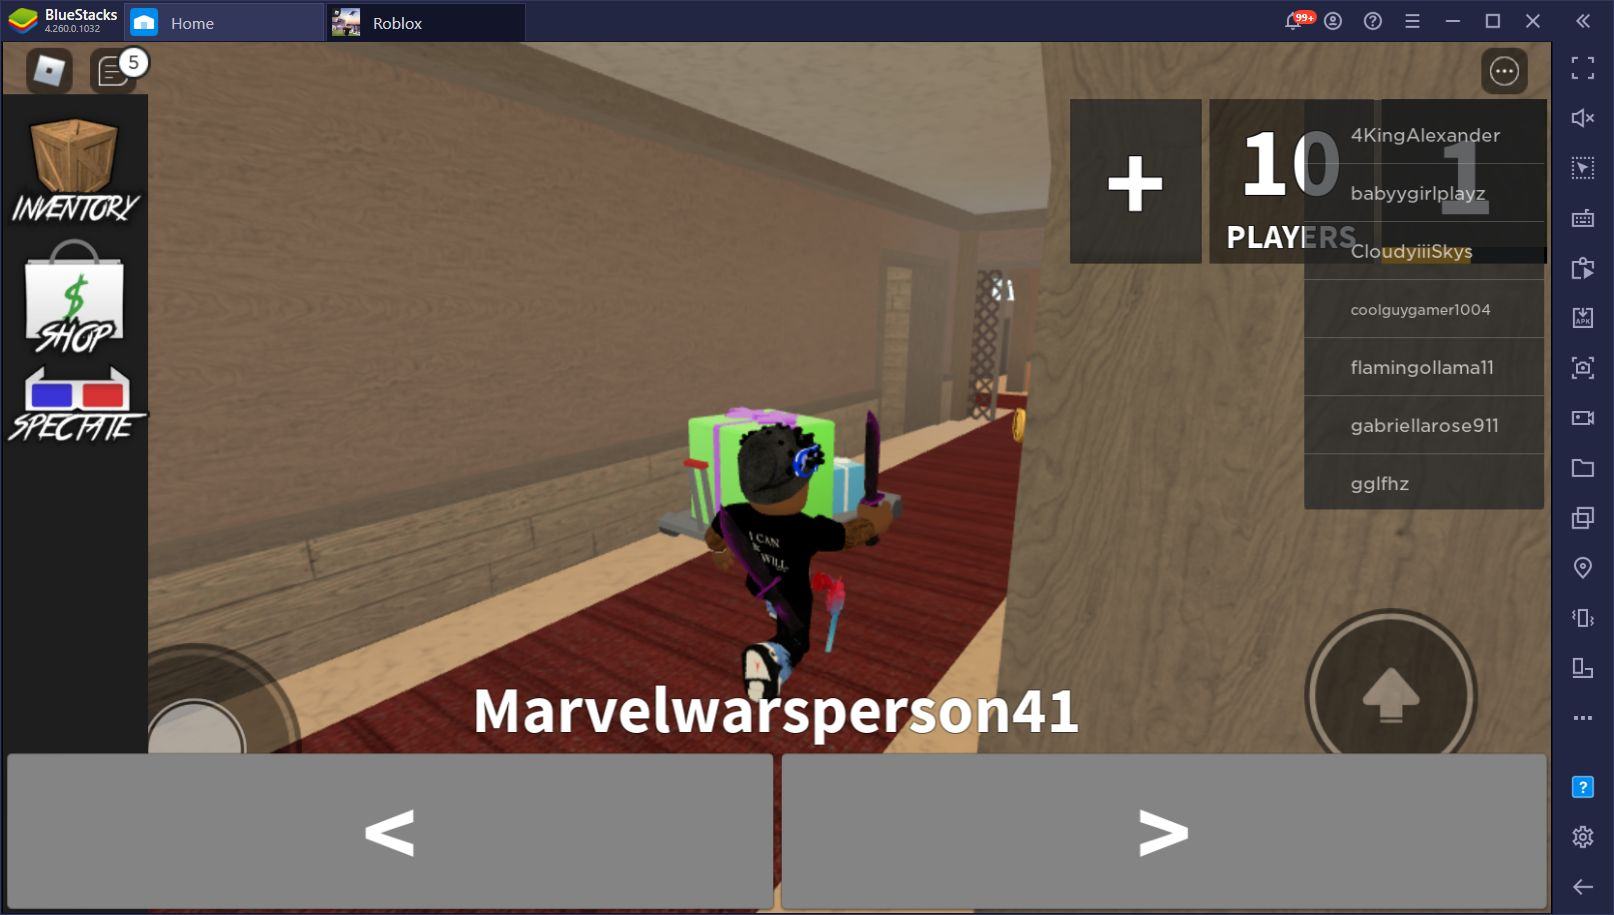 The Best Roblox Games to Play in 2021